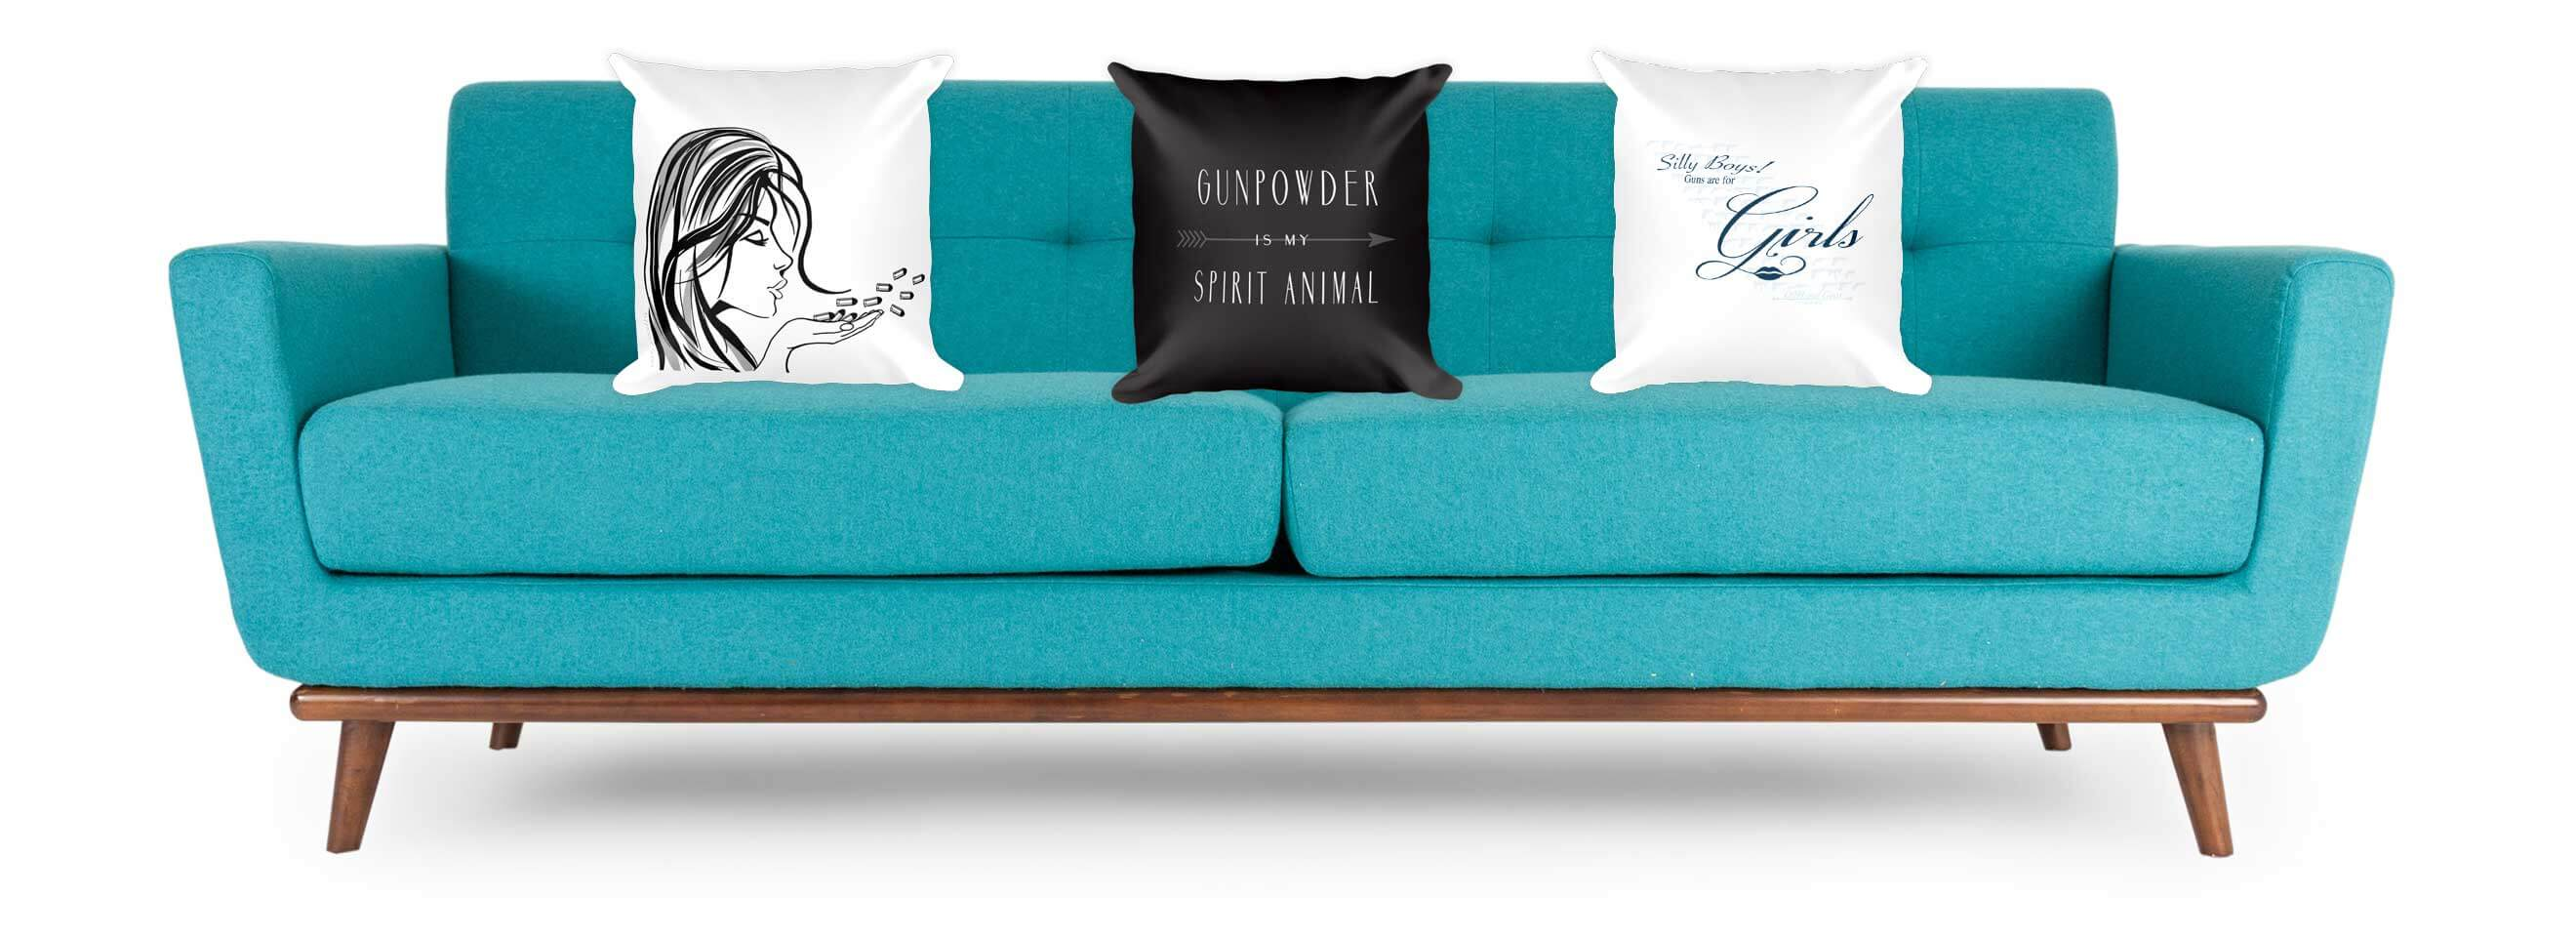 GunGirl Pillows on Tiffany Blue Sofa